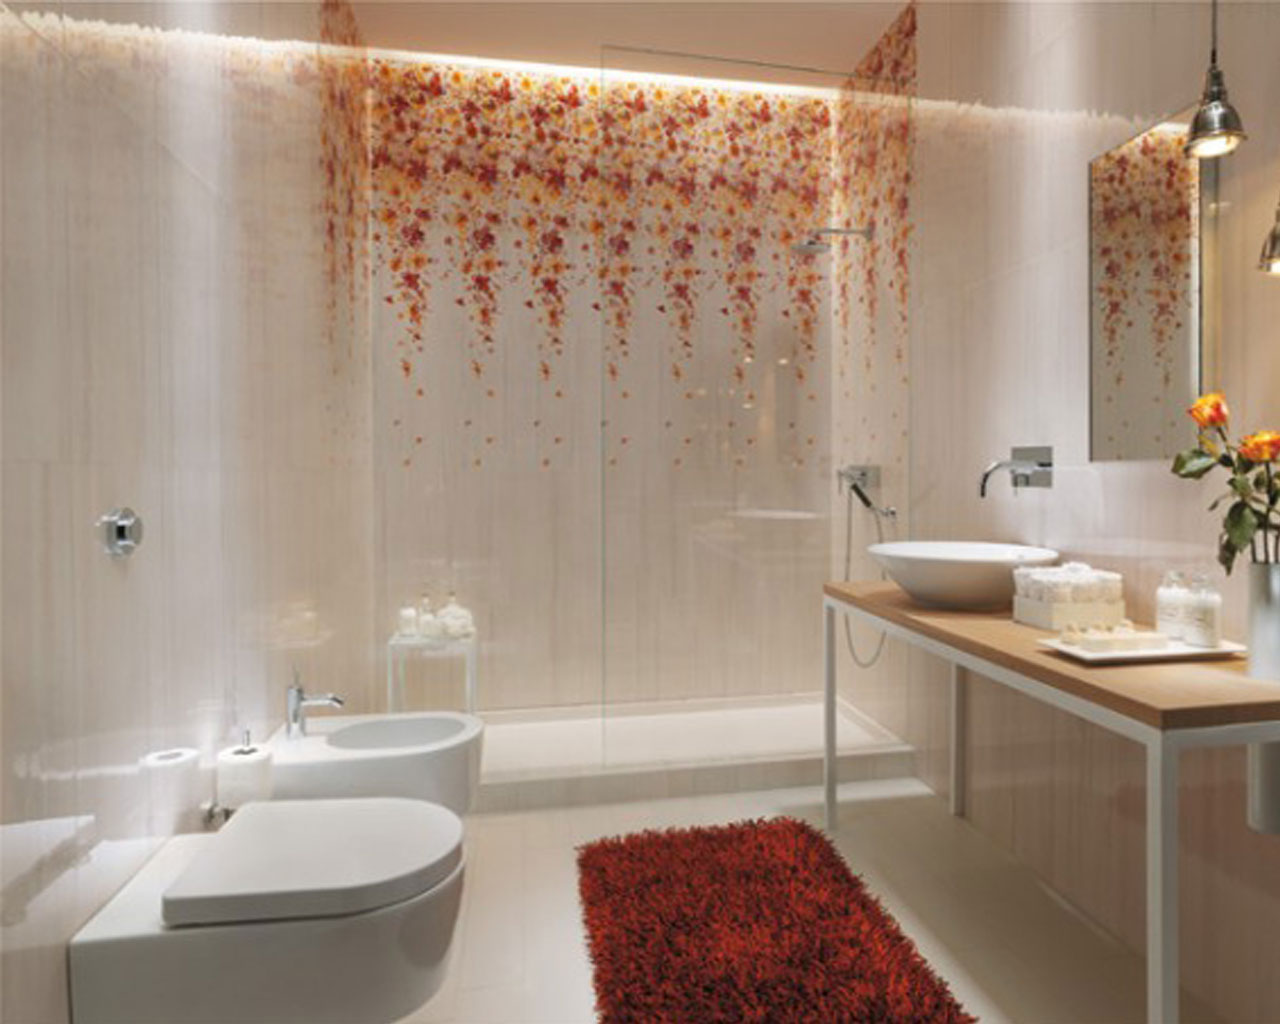 Bathroom-design-image-2012-best-bathroom-design-ideas-bathroom-design